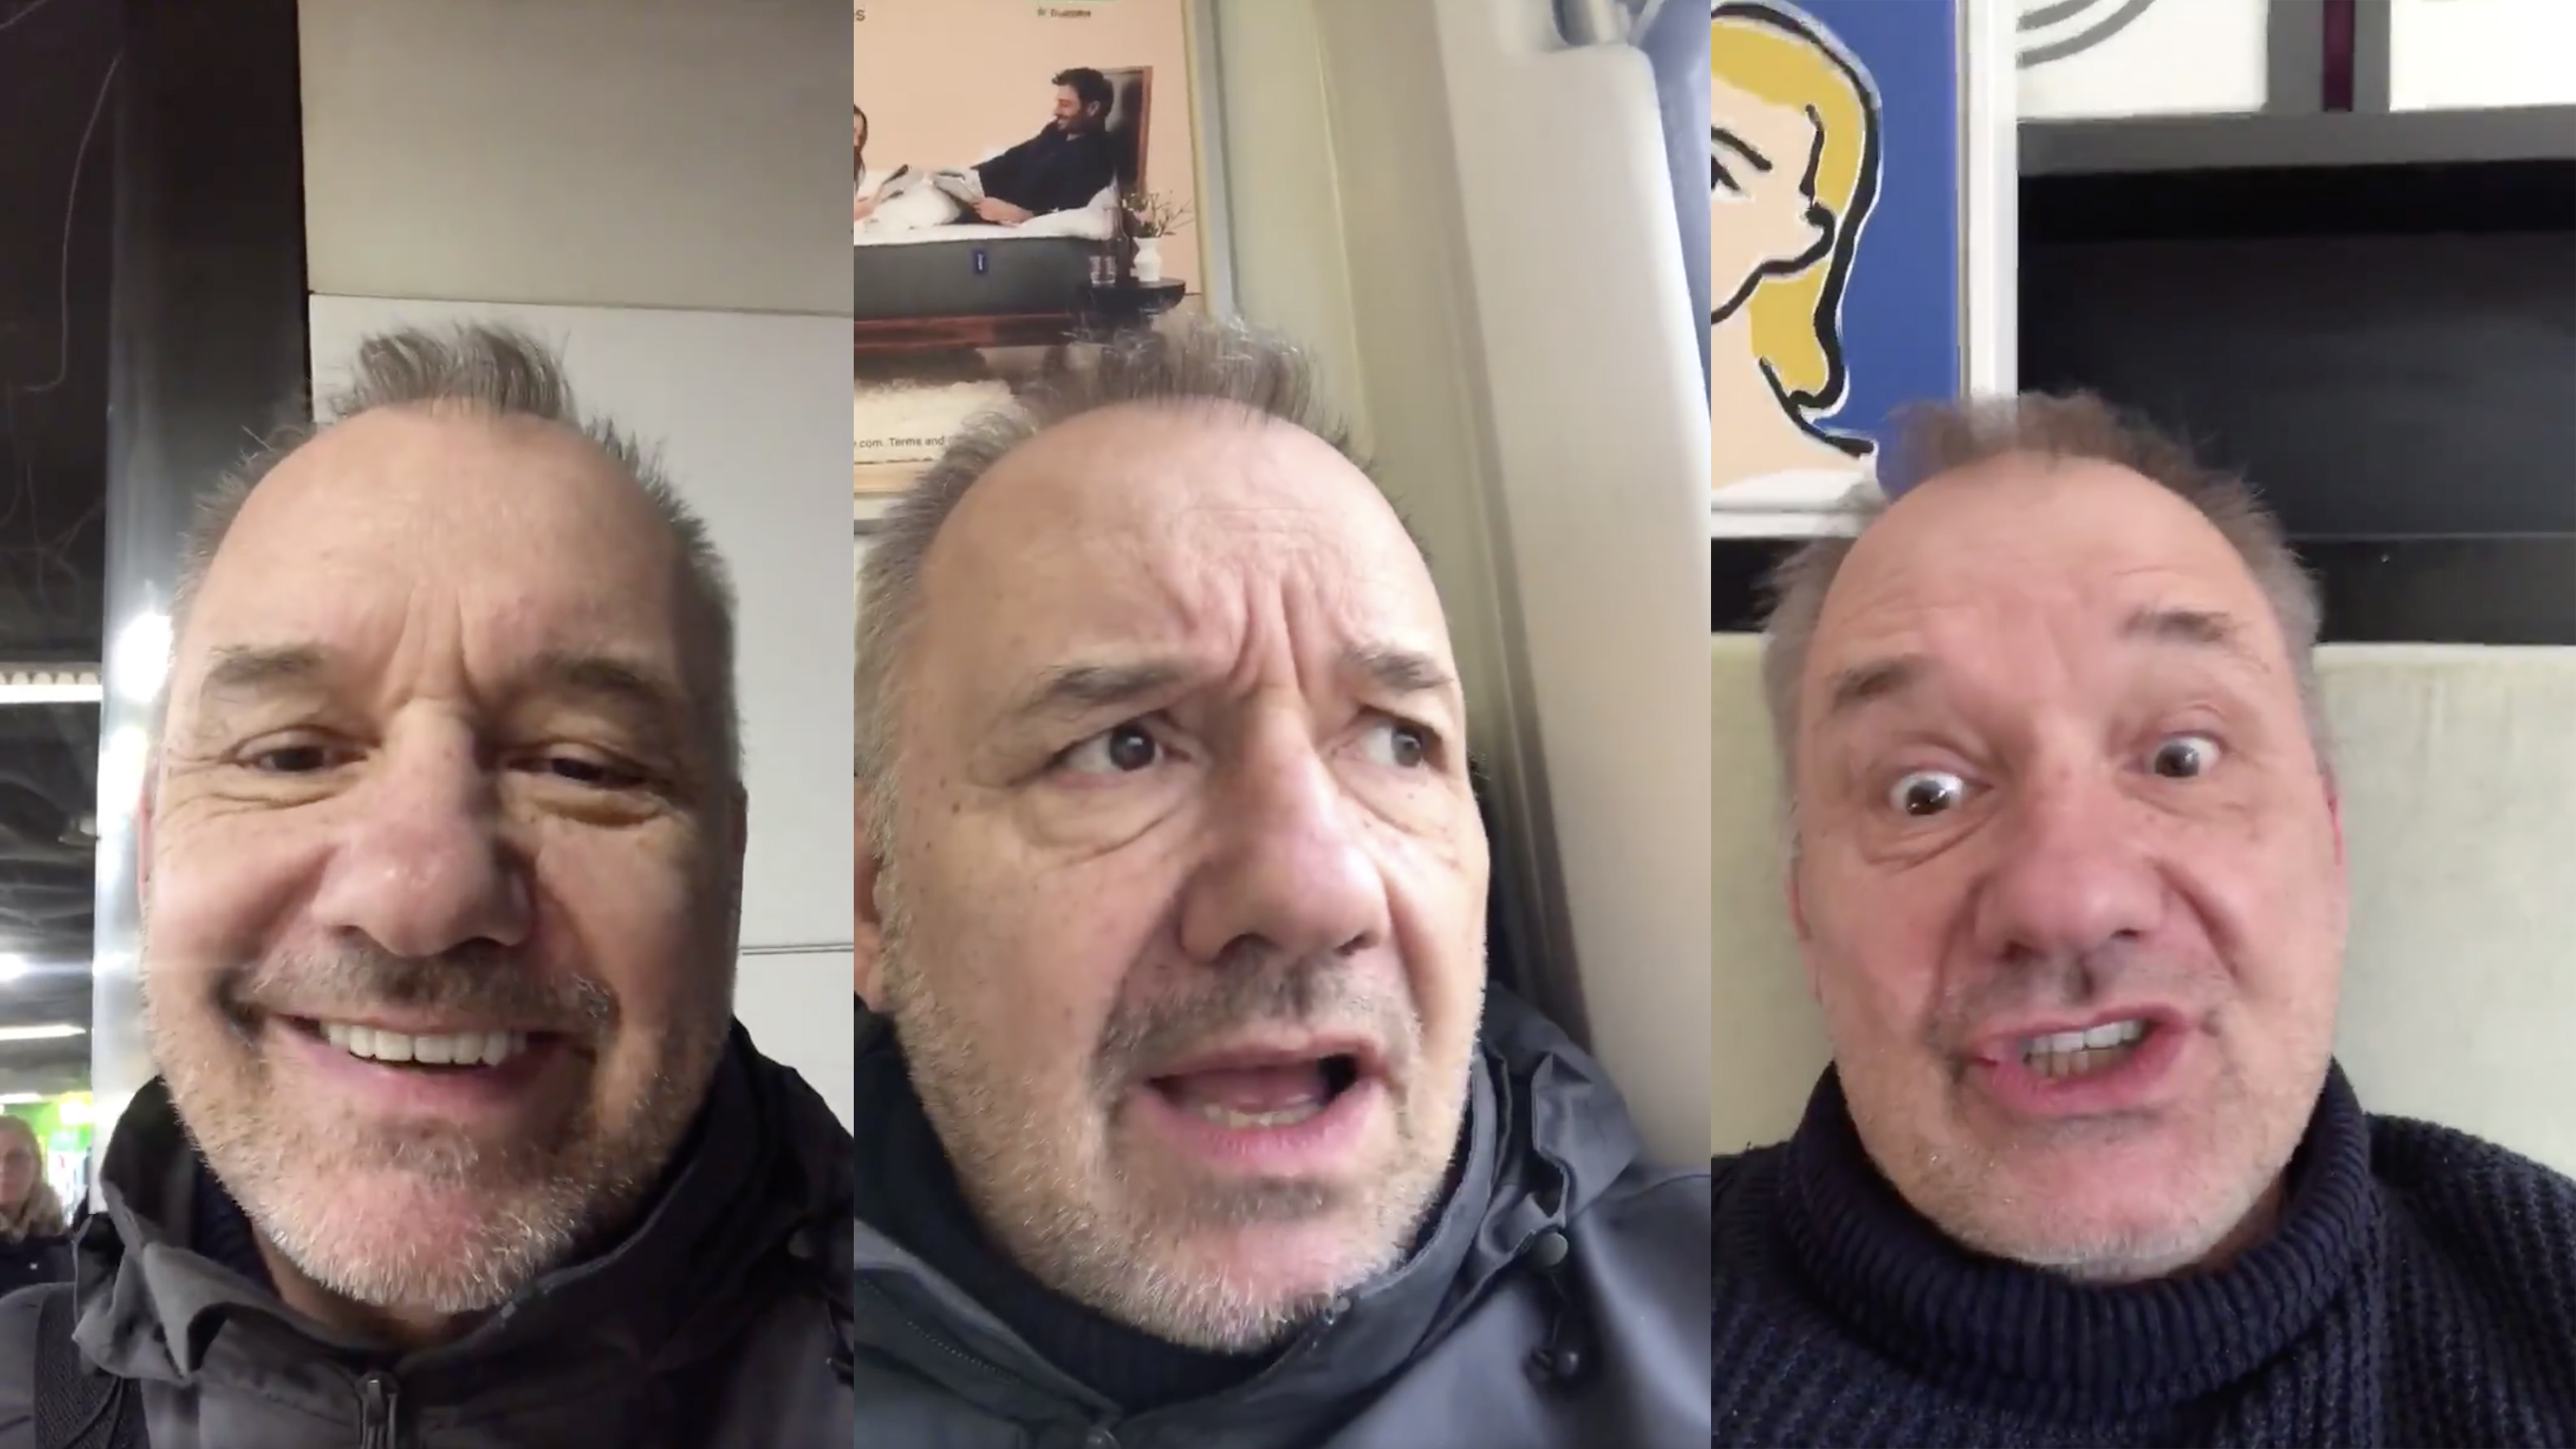 Bob Mortimer S Train Guy Is The Funniest Thing On The Internet